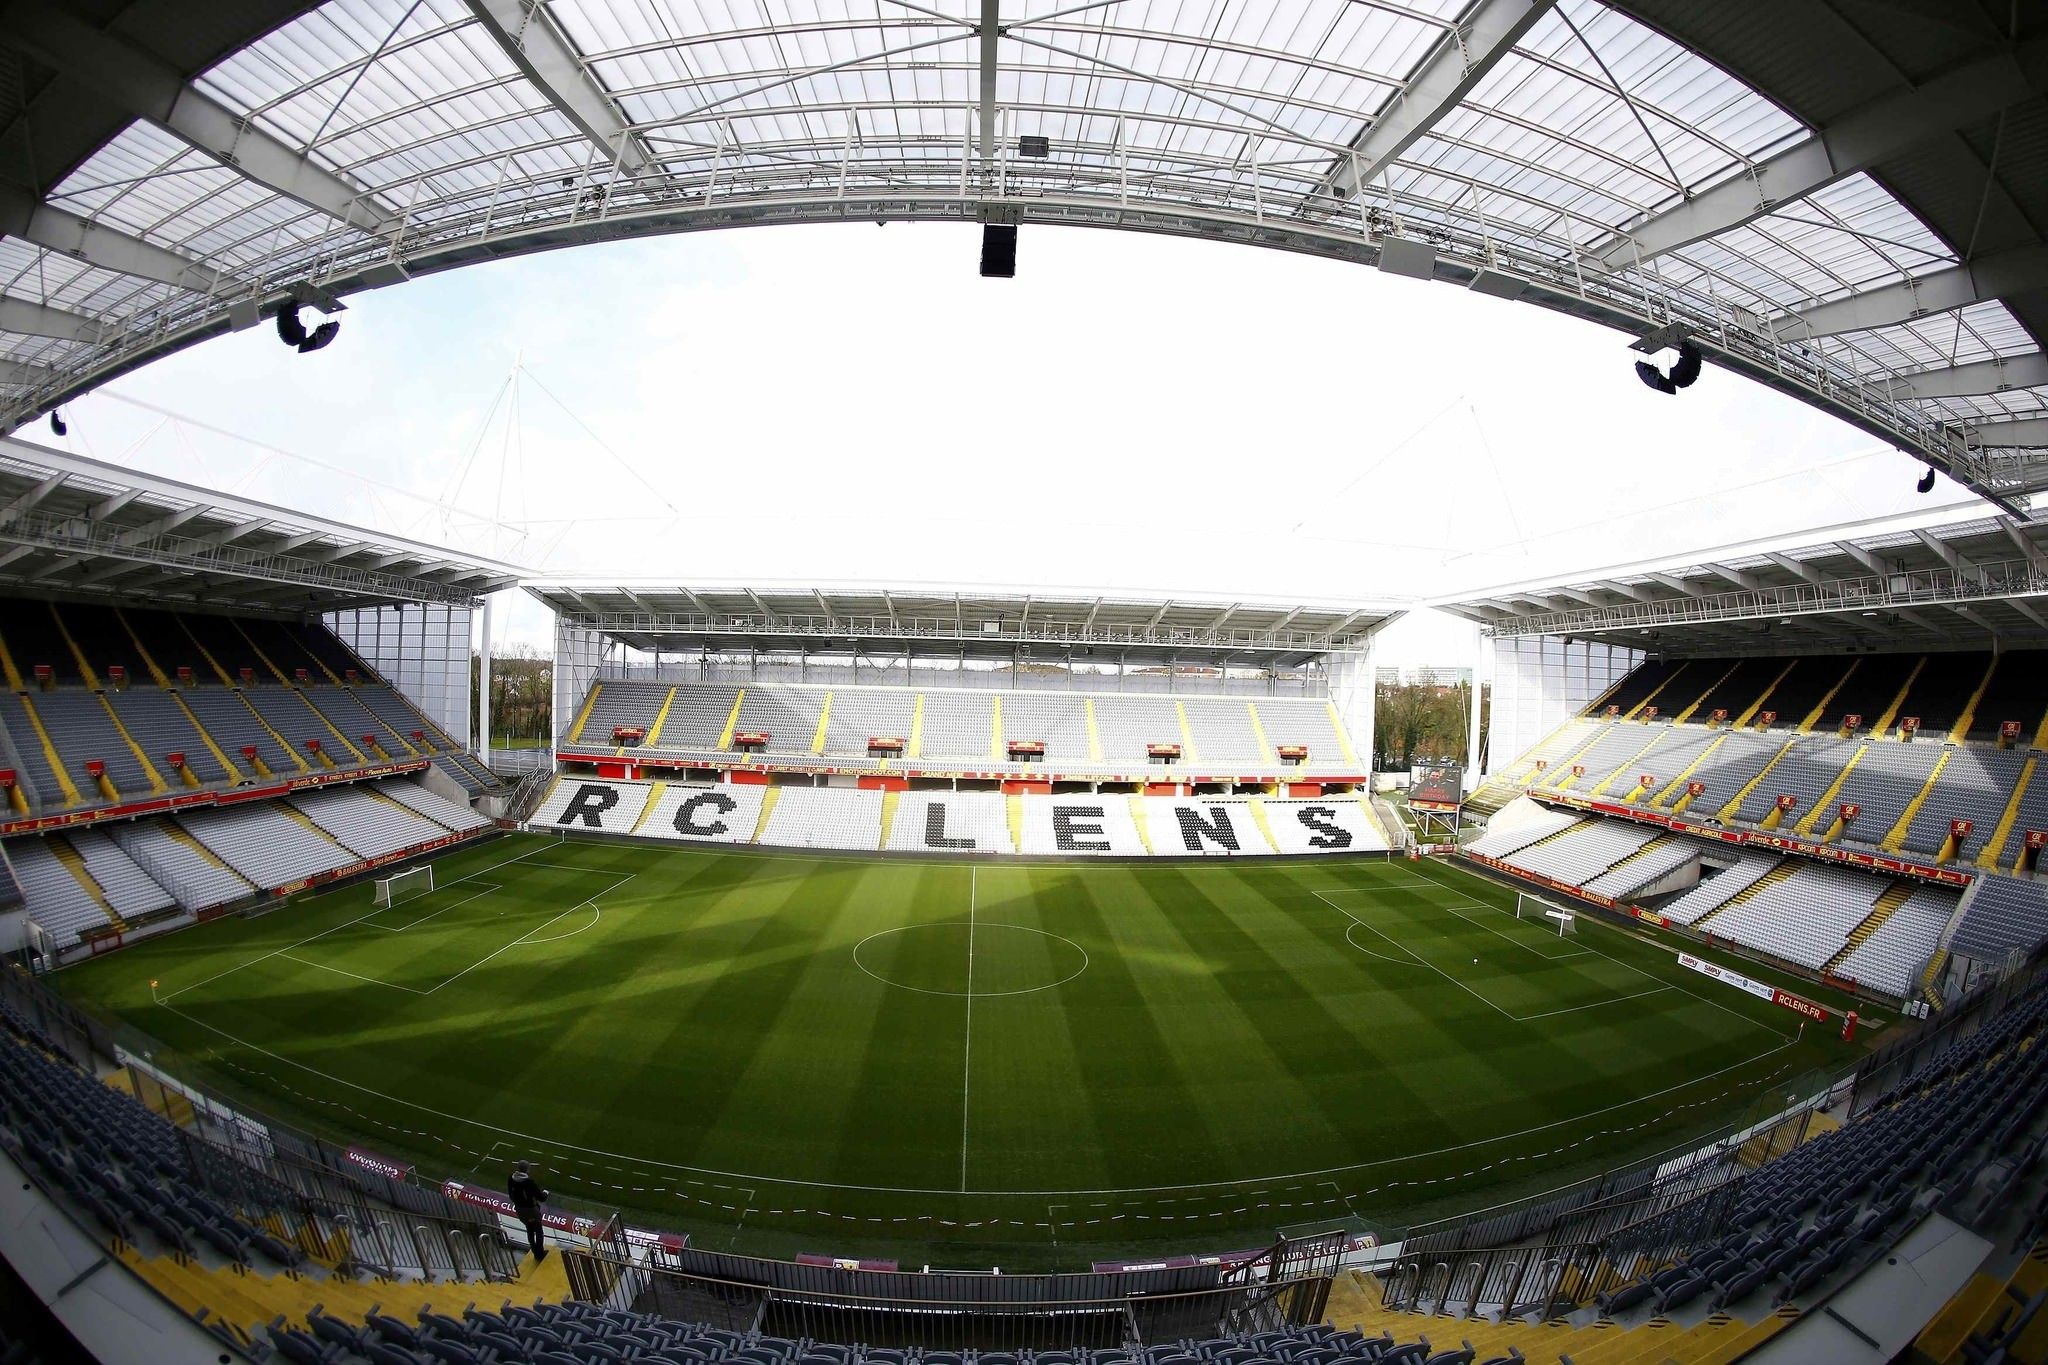 Stade Bollaert-Delelis stadium, Lens, France (Reuters Photo)